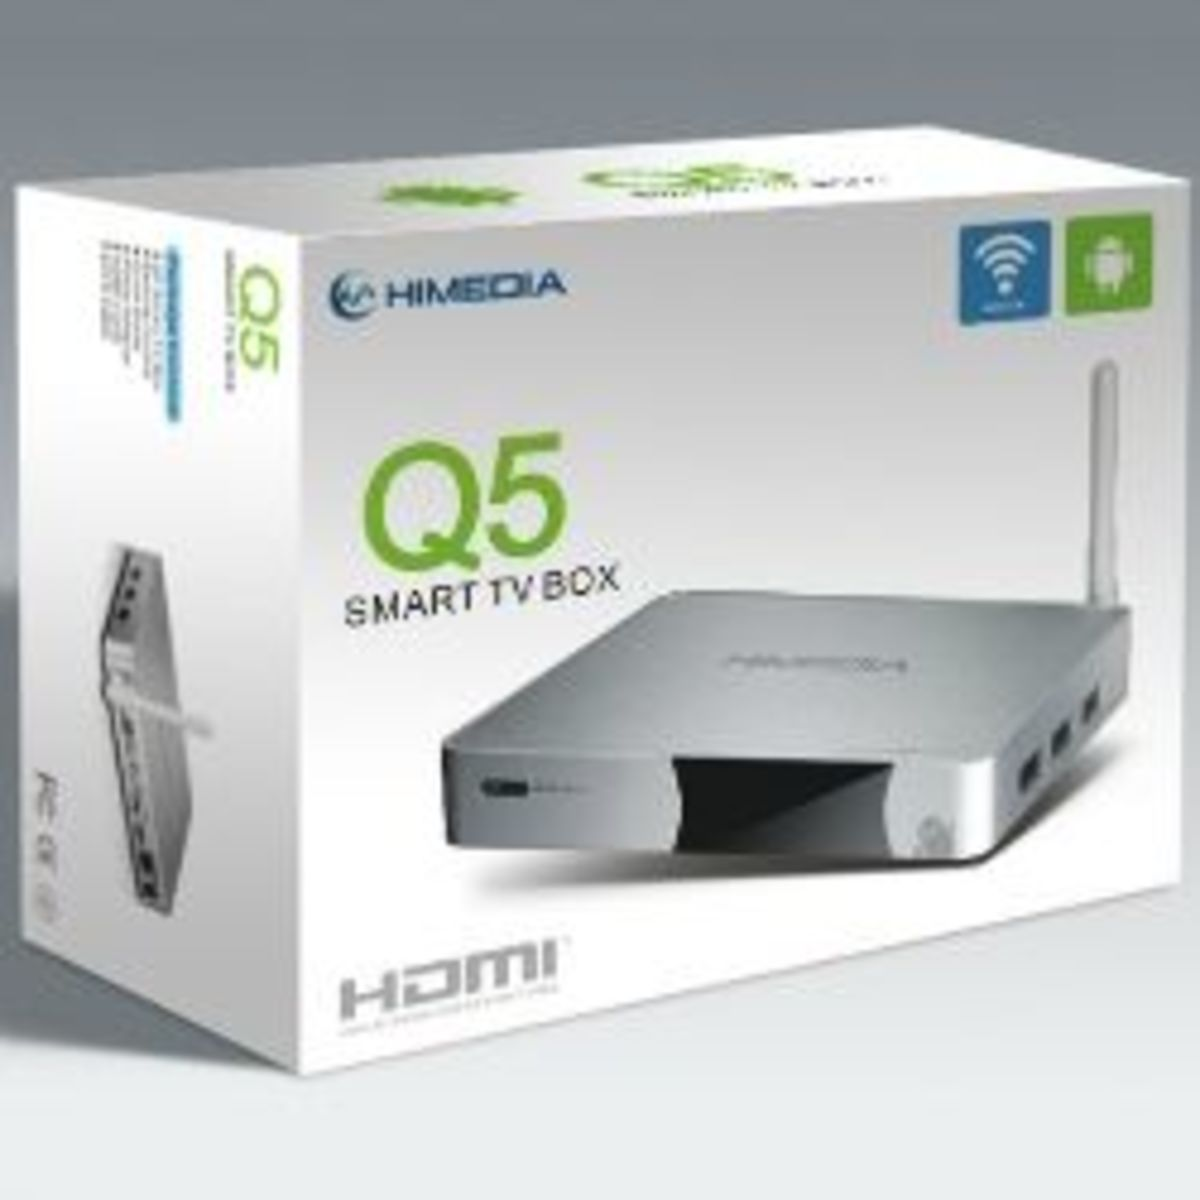 HiMedia Q5 Android Media Player Review